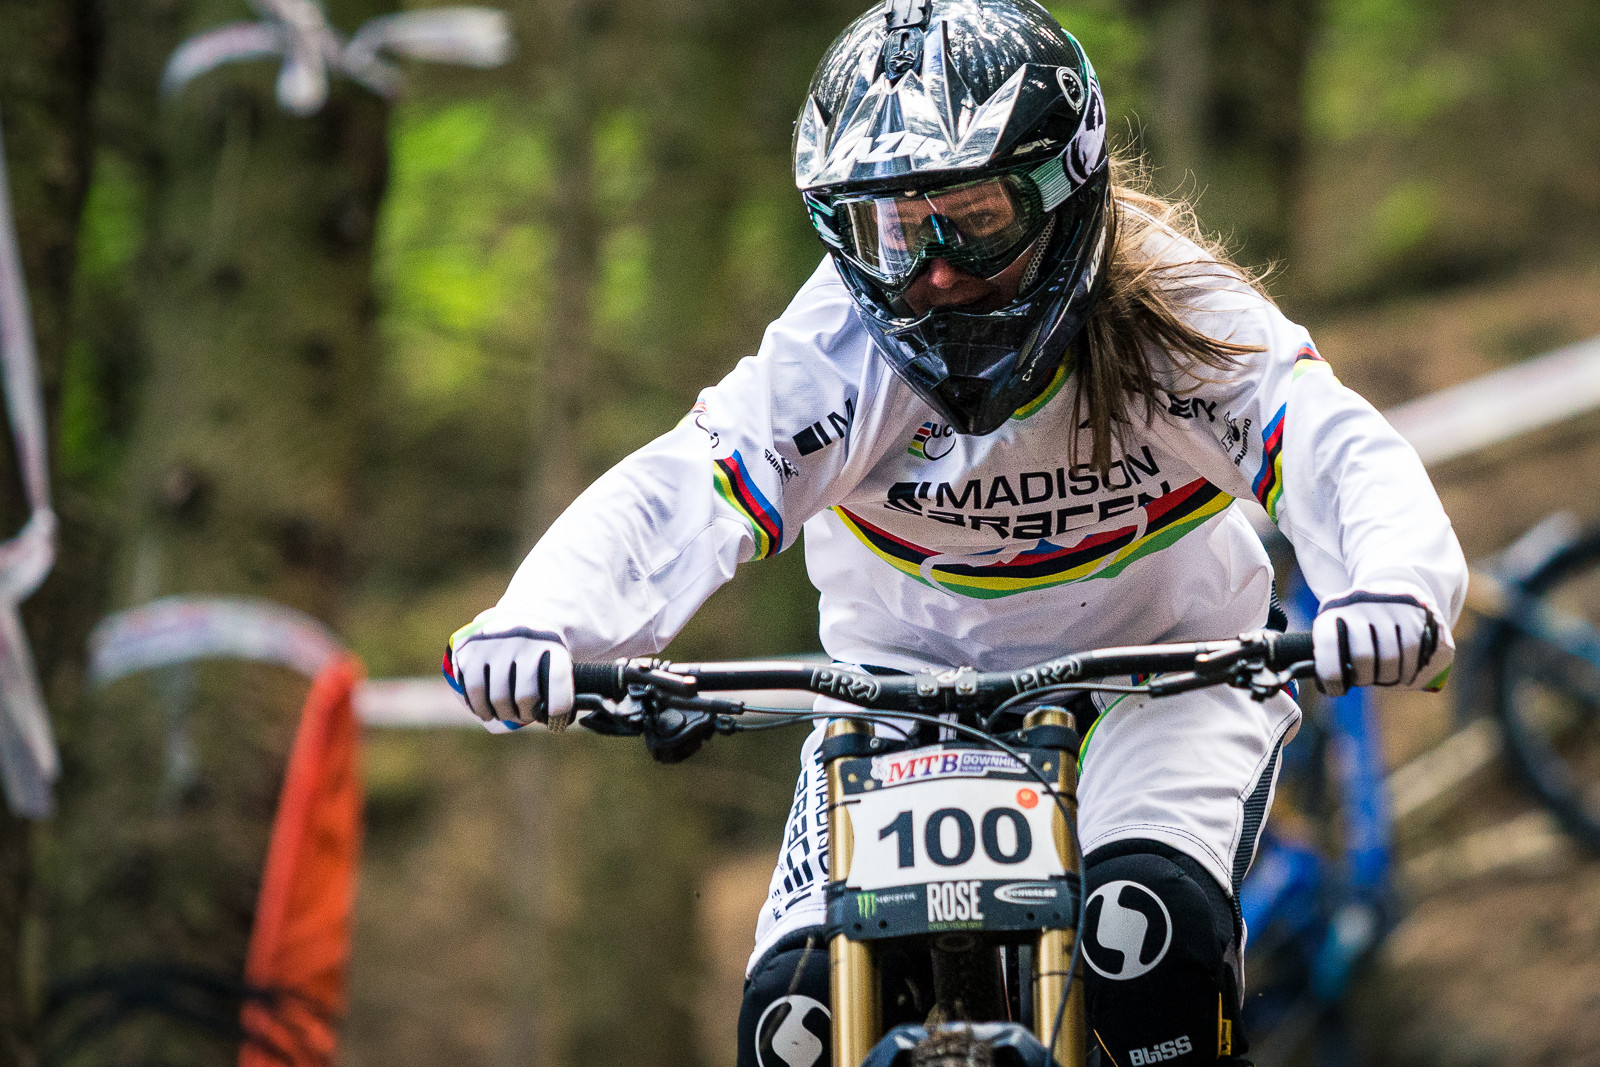 Manon Carpenter, 1st Place Elite Womens, British Downhill Series Langollen - RACE REPORT - British Downhill Series Llangollen - Mountain Biking Pictures - Vital MTB